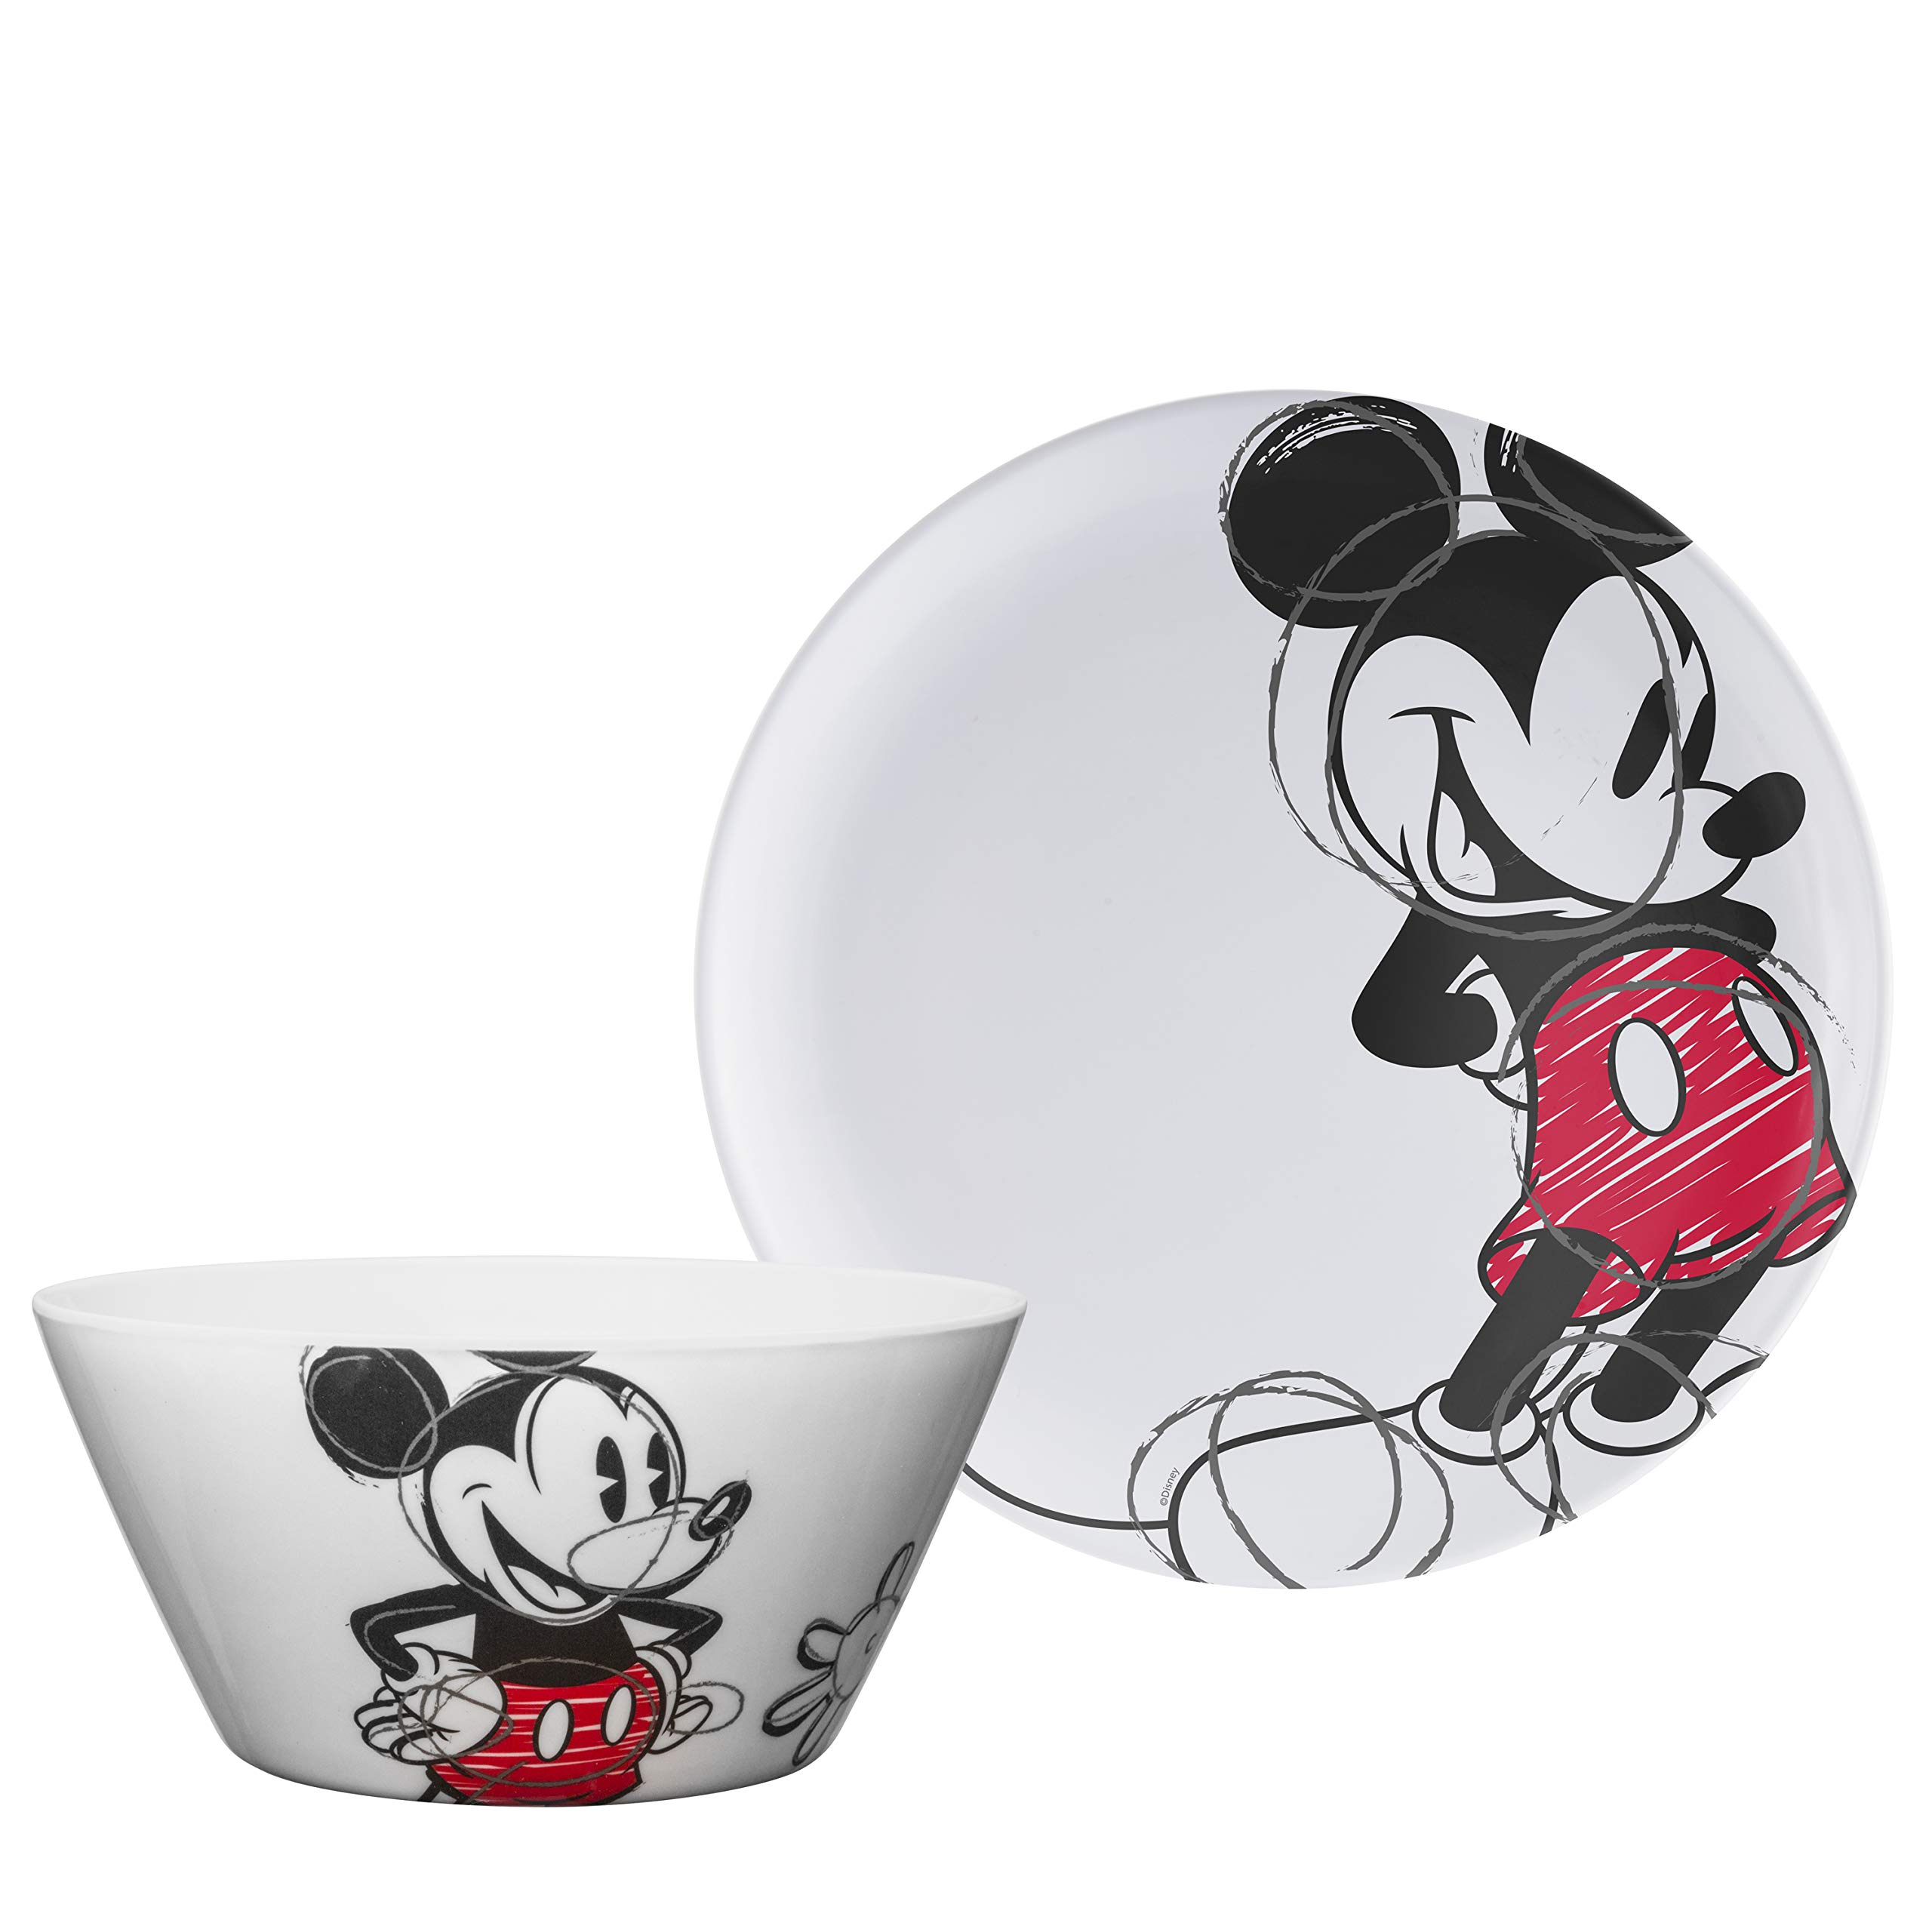 Zak Designs Disney Mickey Mouse - Kids Dinnerware Set, Including 10in Melamine Plate and 27oz Bowl Set, Durable and Break Resistant Plate and Bowl Makes Mealtime Fun (Melamine, BPA-Free) by Zak Designs